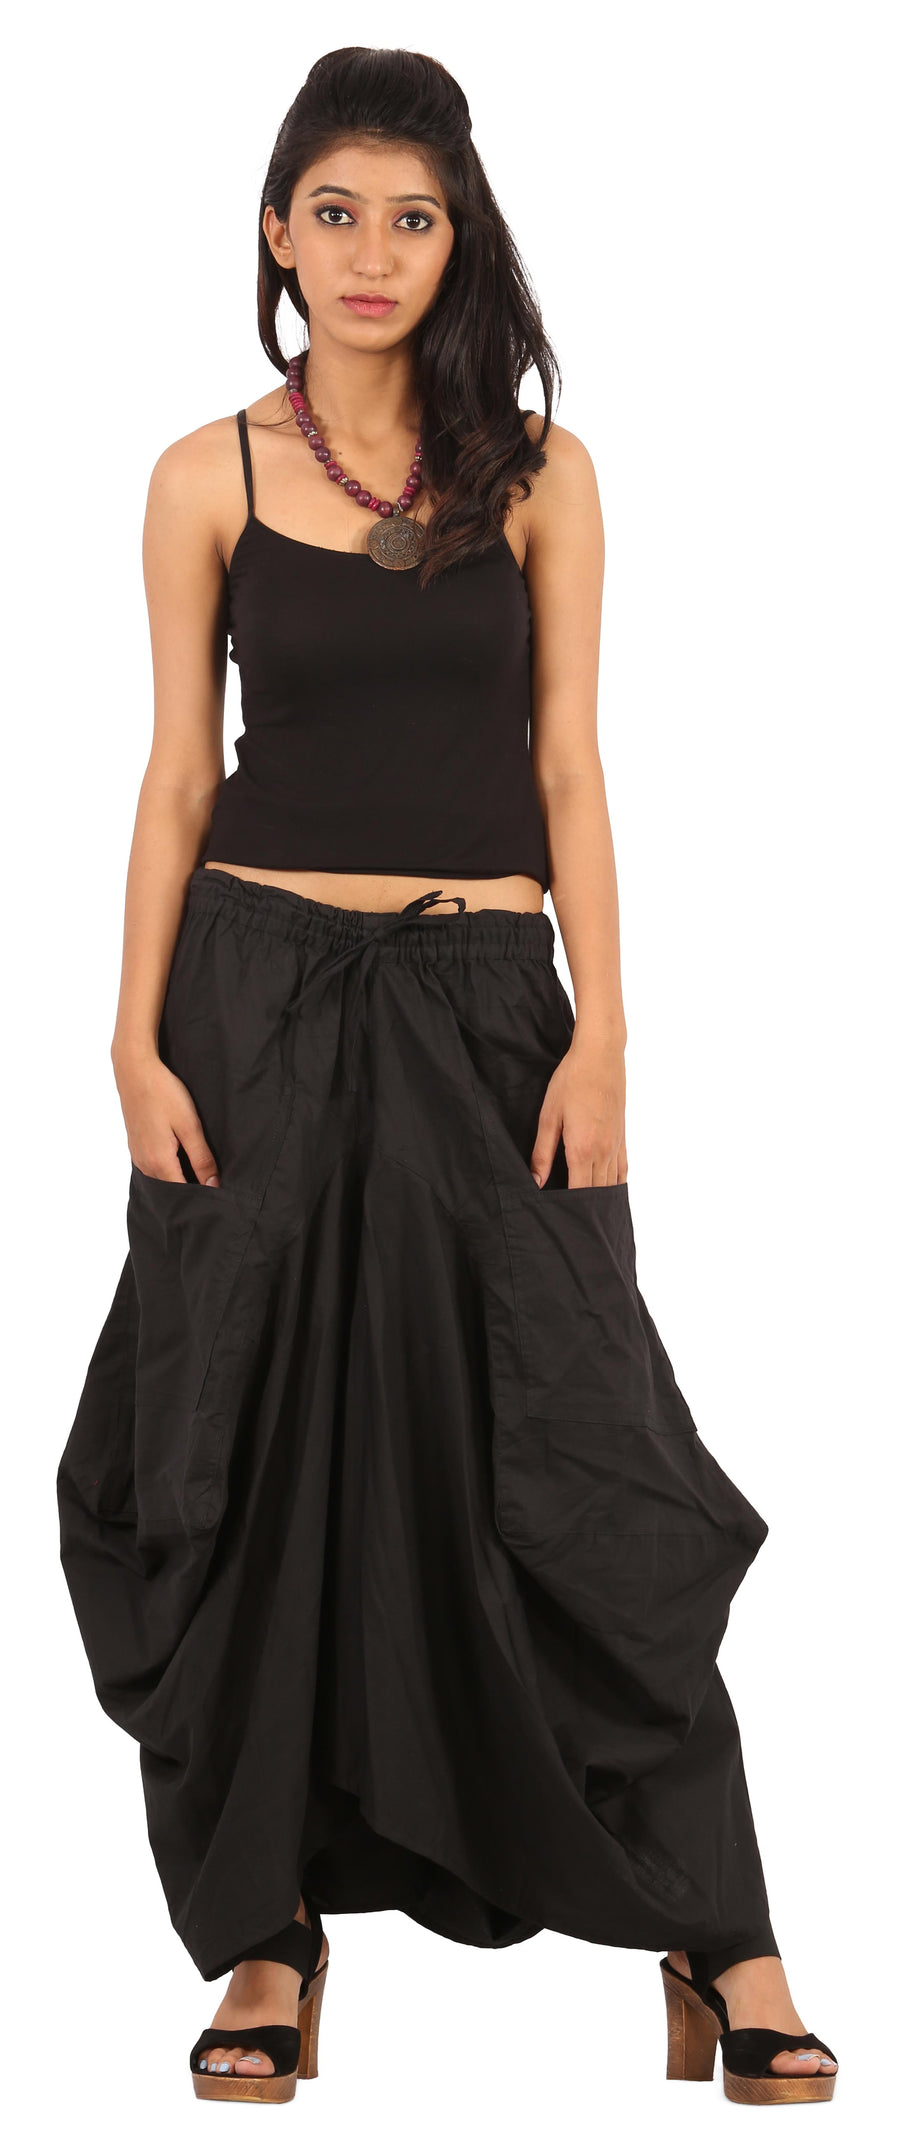 long Black skirt, long skirts for women, long skirt, maxi skirt, ladies skirt, skirts online, summer skirts, winter skirts, cute skirts, cotton skirts, XL Skirt, XXL Skirts, Long skirts online , full skirt, long summer skirts, casual skirts